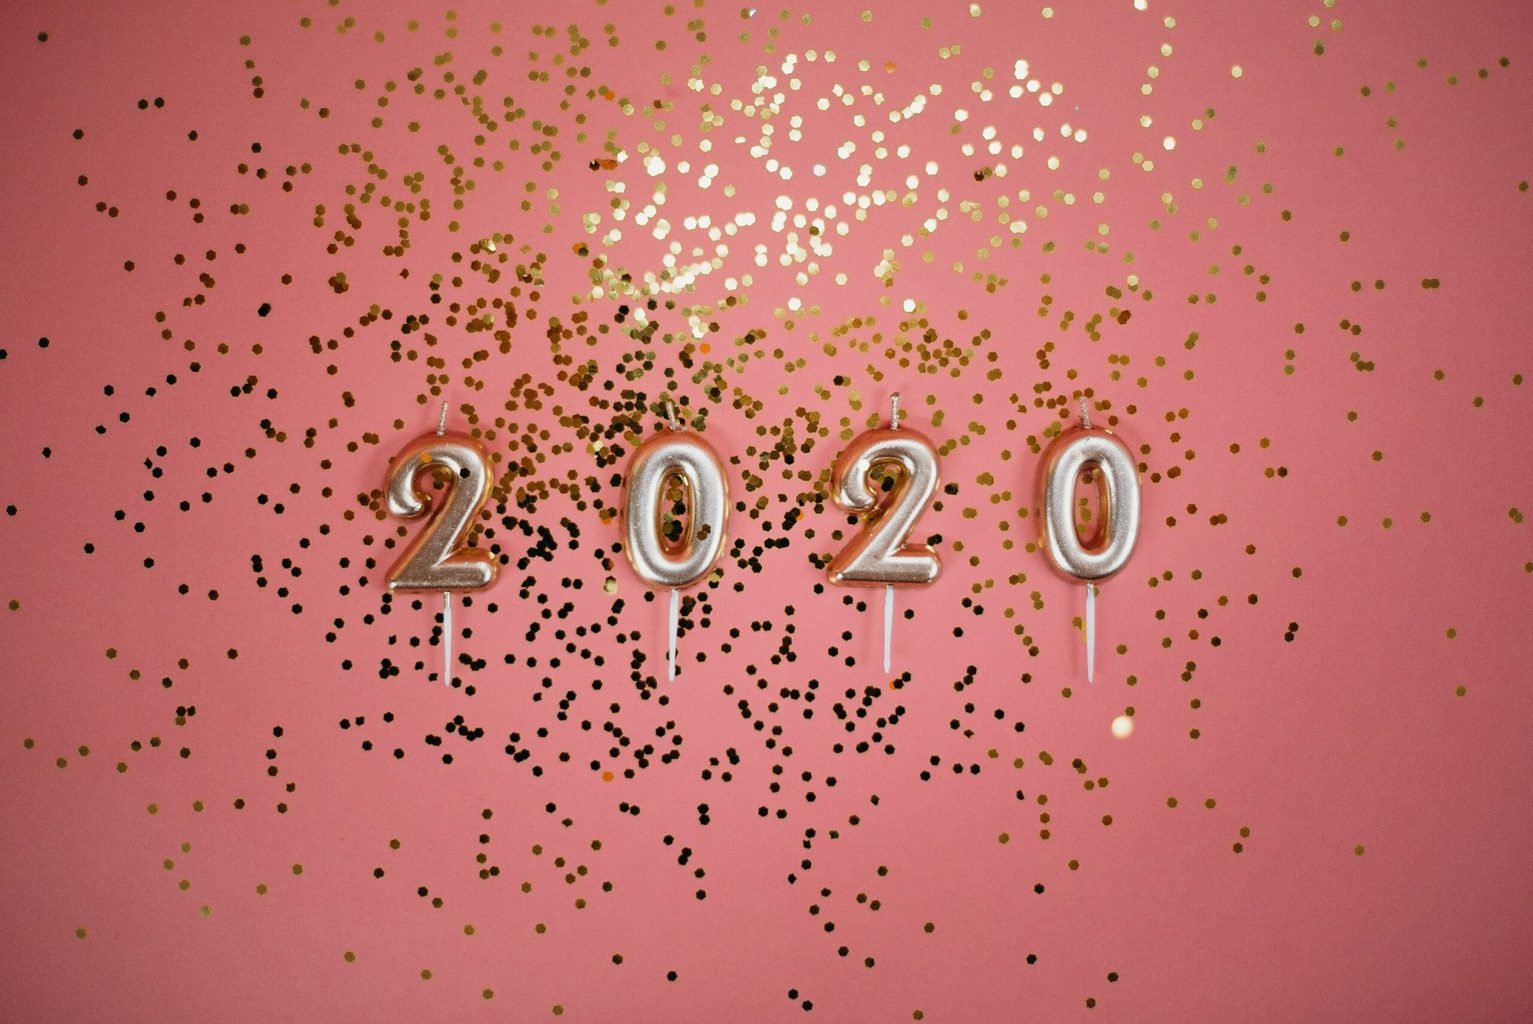 2020 pale gold number candles and gold sparkles against a coral-pink background old fashion trends coming back